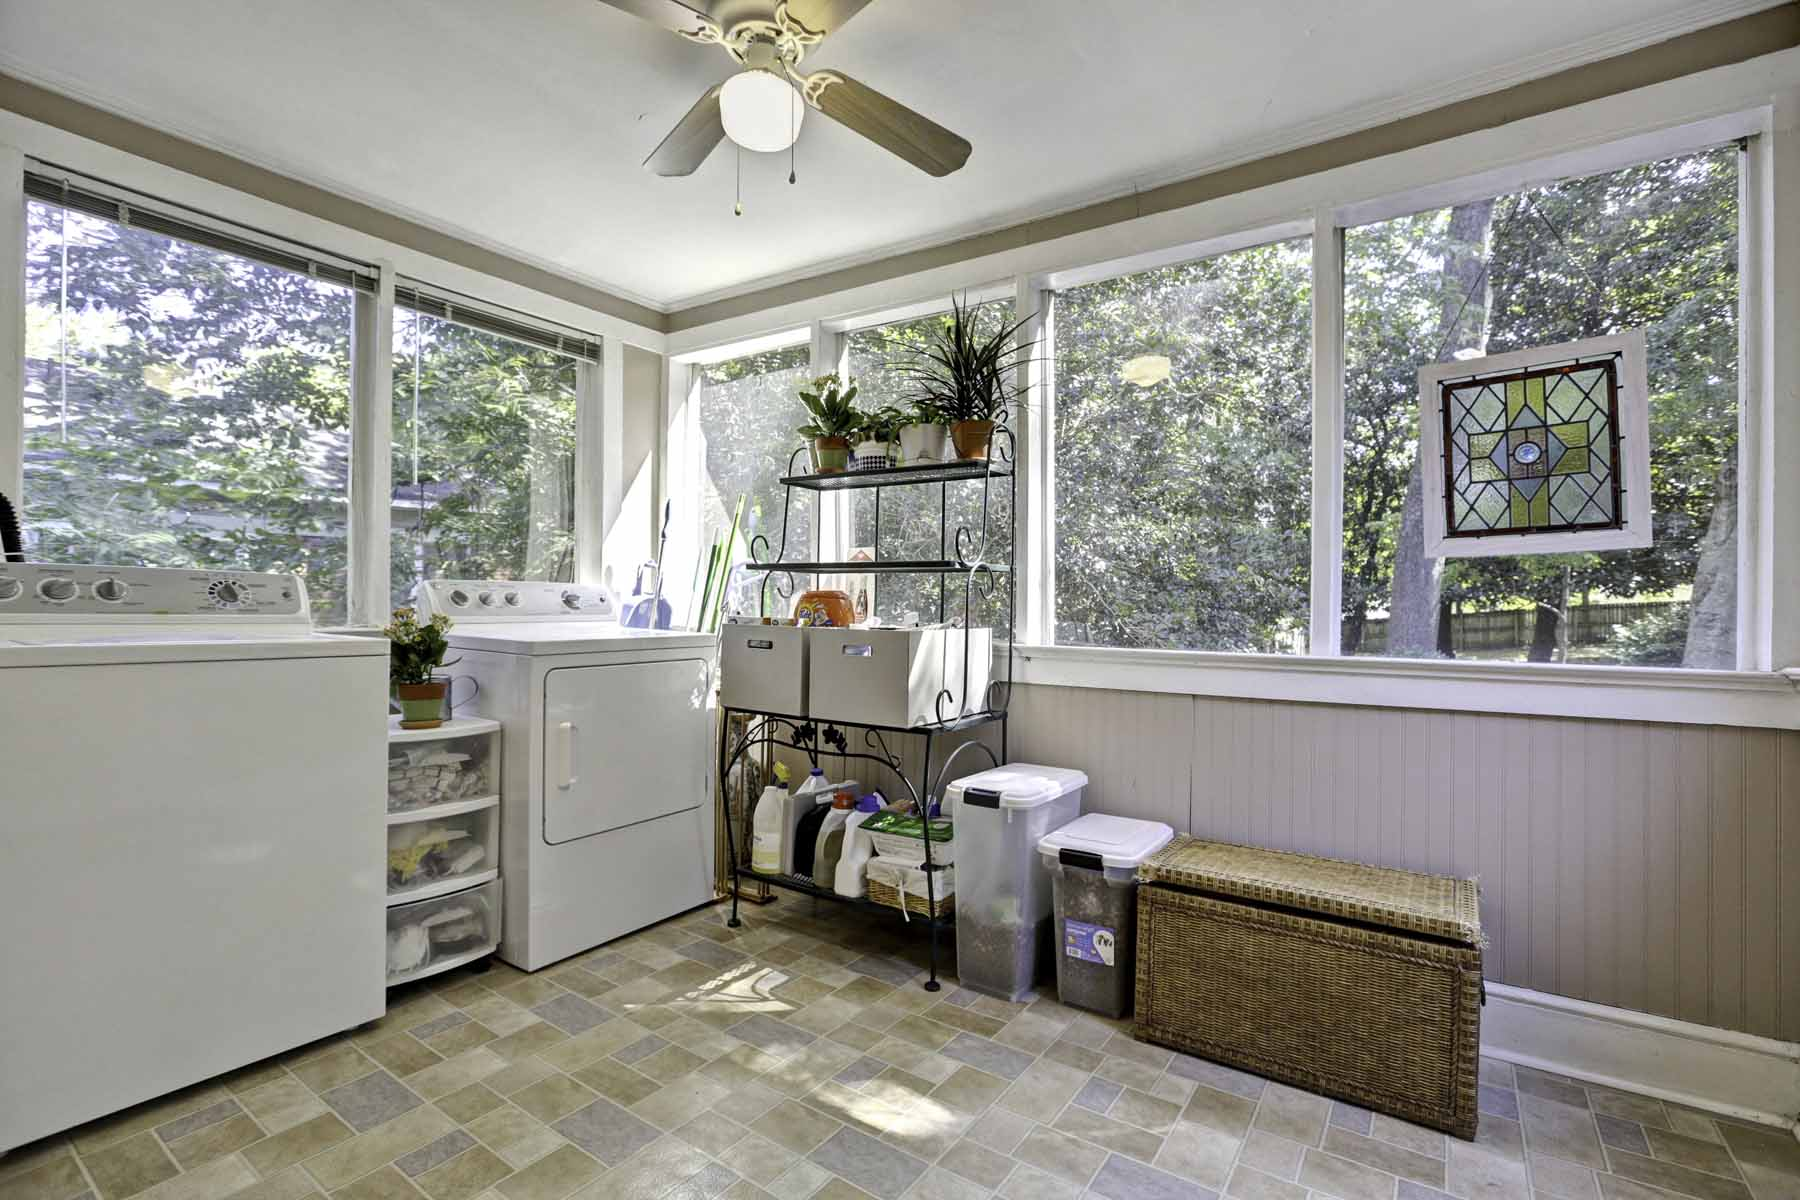 Additional photo for property listing at Charming 1930's Home in East Atlanta 888 Moreland Avenue SE Atlanta, Georgië 30316 Verenigde Staten